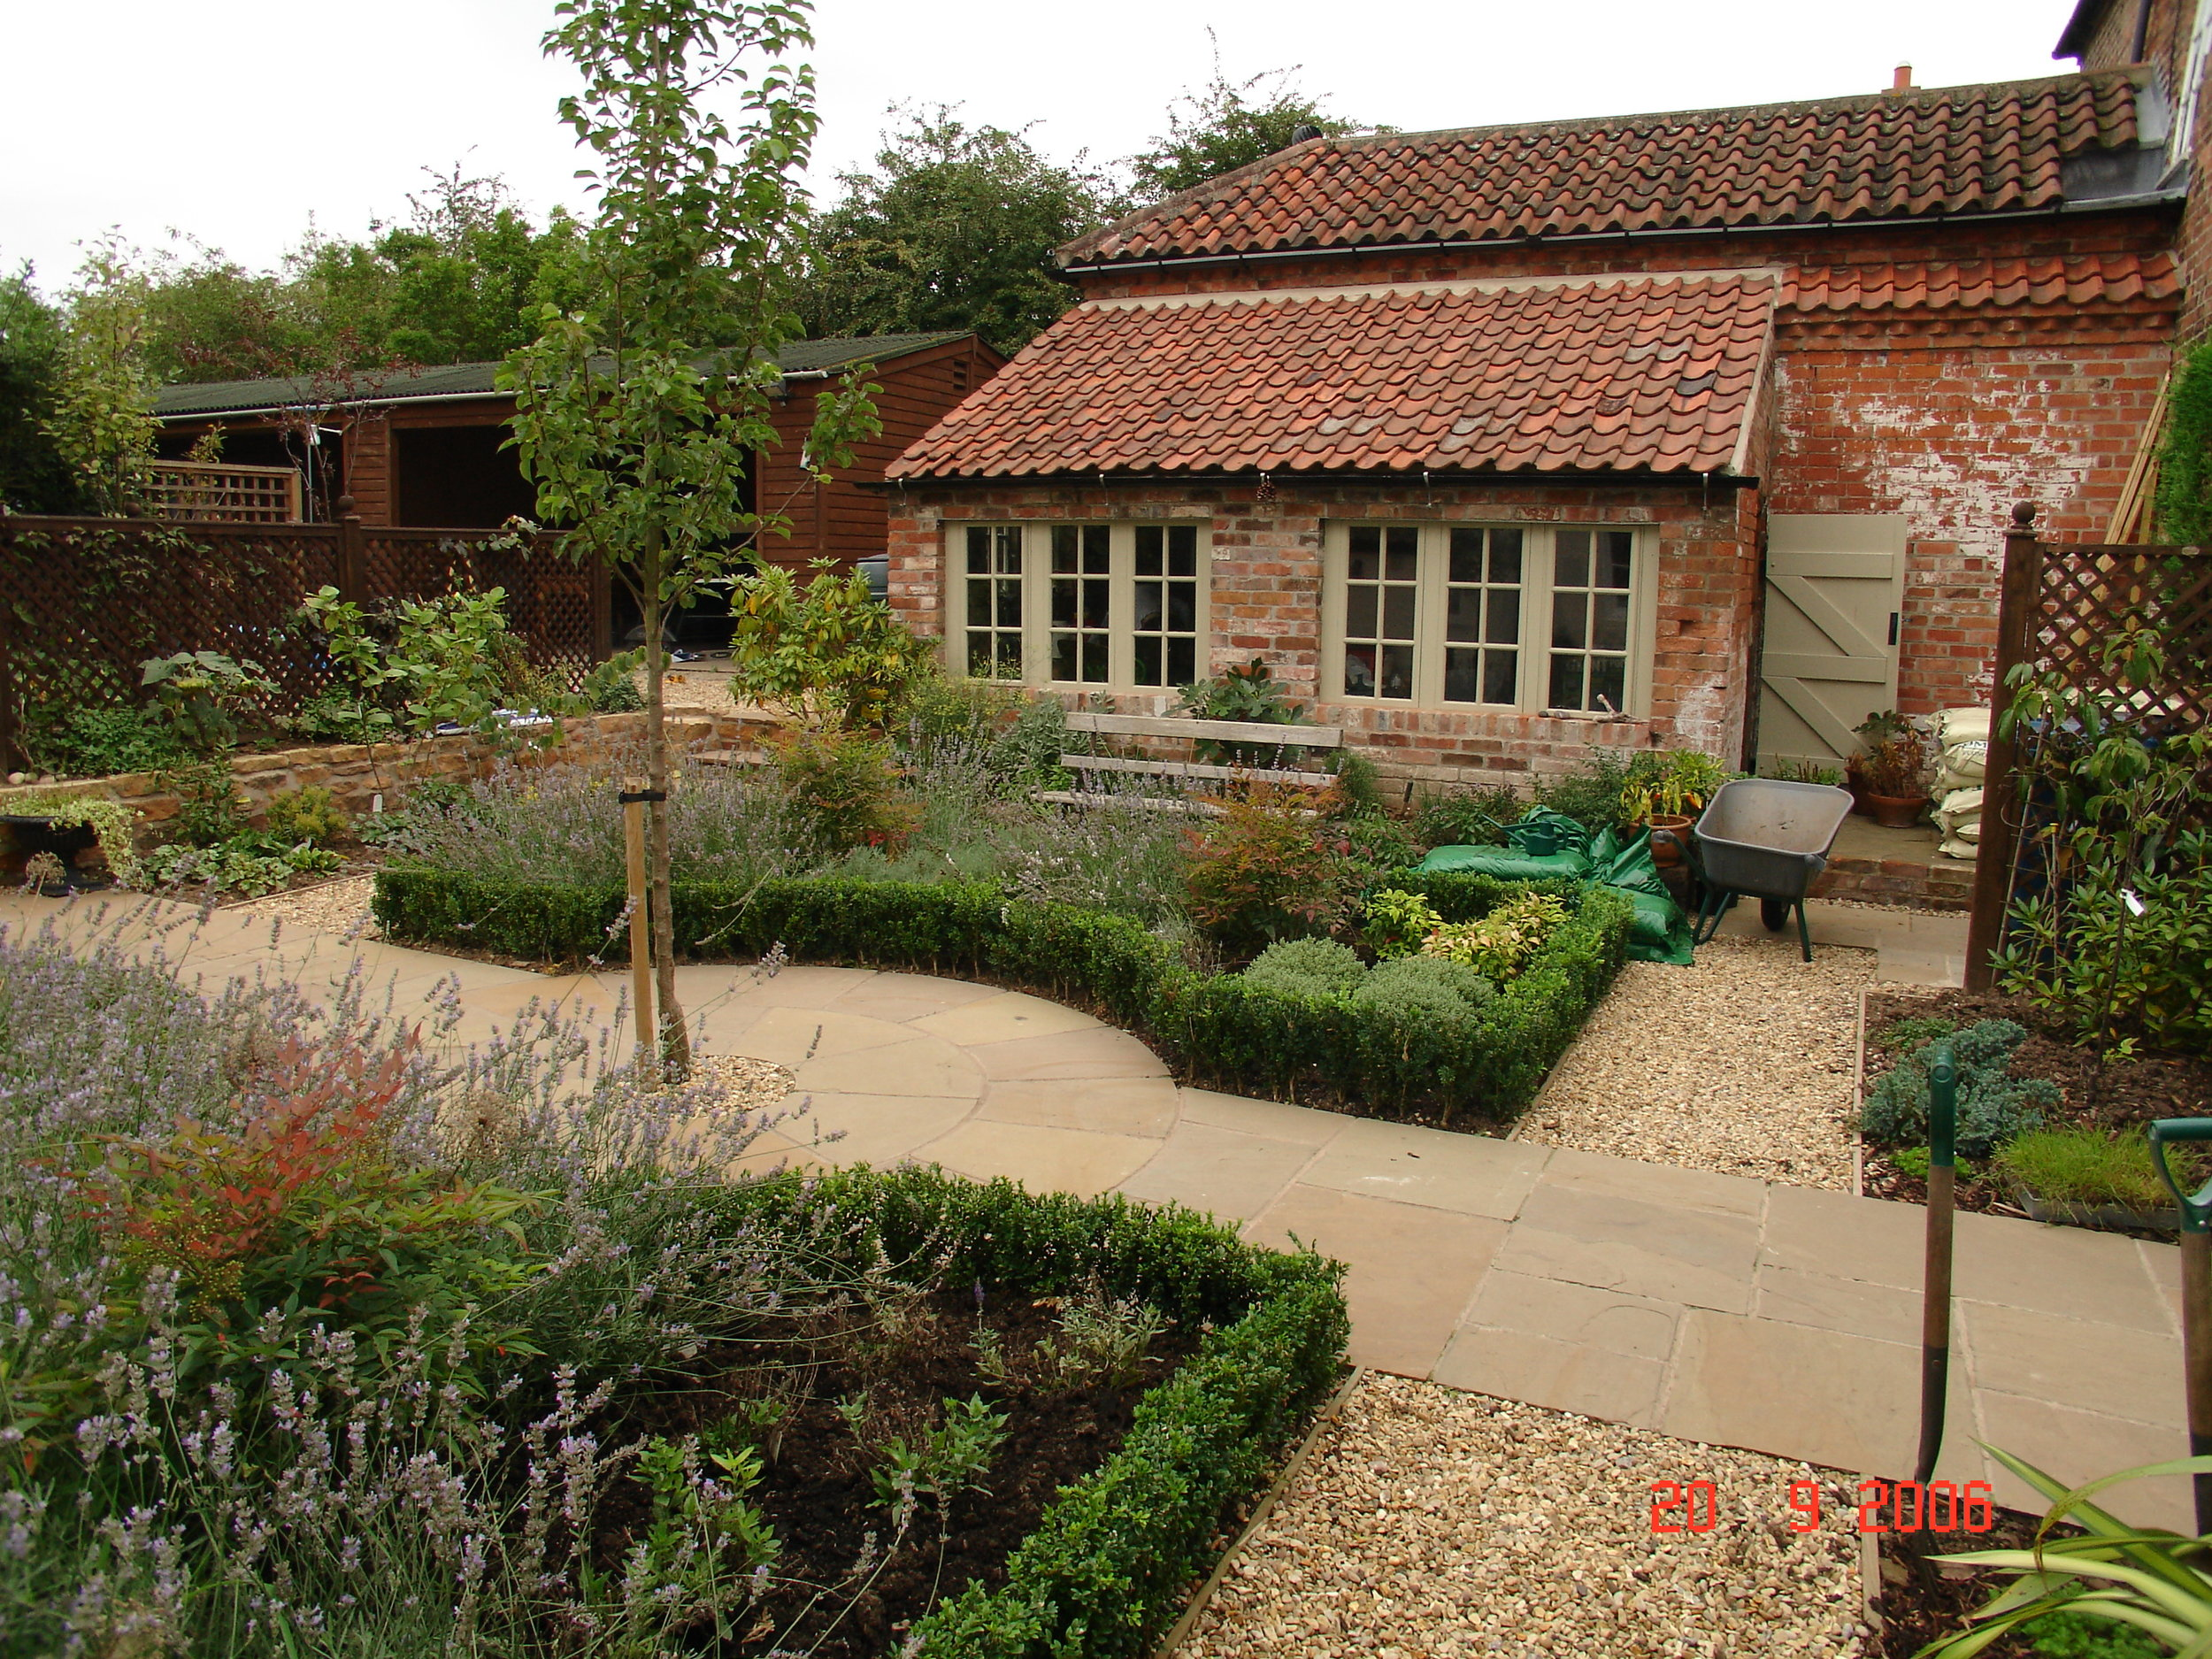 Paving and Herb Garden